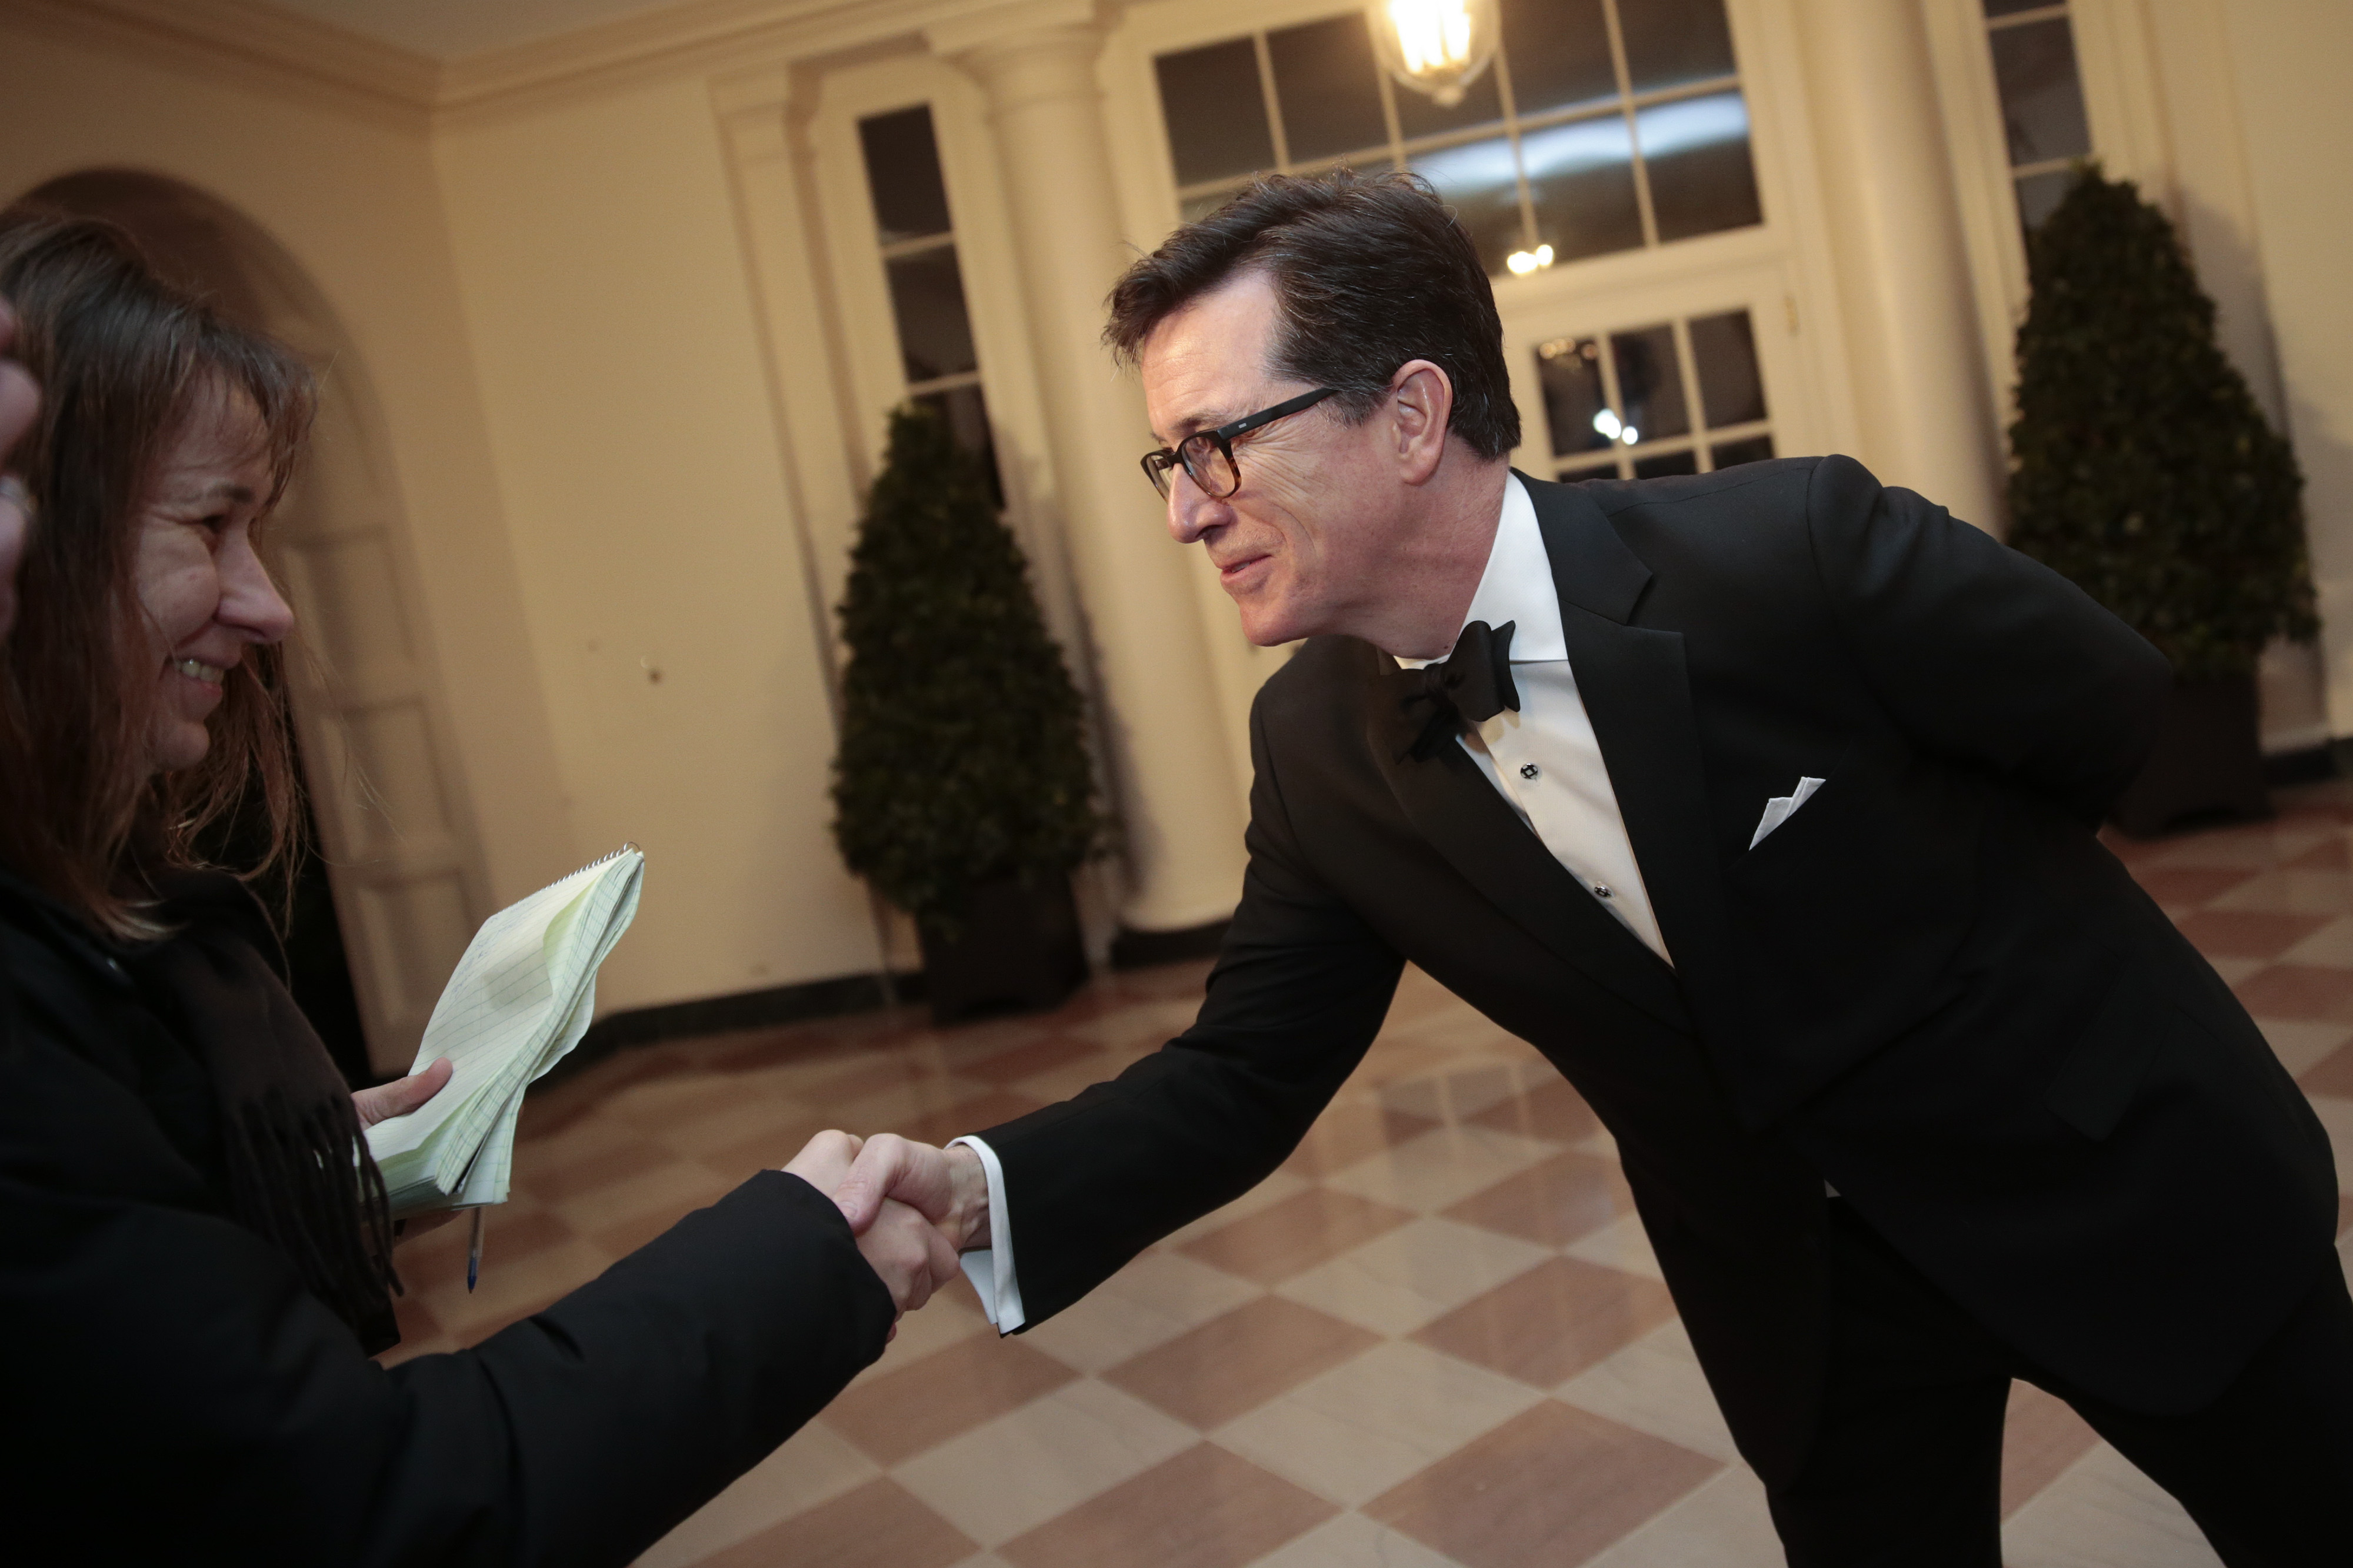 WASHINGTON, DC - FEBRUARY 11:  Actor and television host Stephen Colbert, right, greets a member of the French press as he arrives to a state dinner hosted by U.S. President Barack Obama and U.S. first lady Michelle Obama in honor of French President Francois Hollande at the White House on February 11, 2014 in Washington, DC. Obama and Hollande said the U.S. and France are embarking on a new, elevated level of cooperation as they confront global security threats in Syria and Iran, deal with climate change and expand economic cooperation. (Photo by Andrew Harrer-Pool/Getty Images)